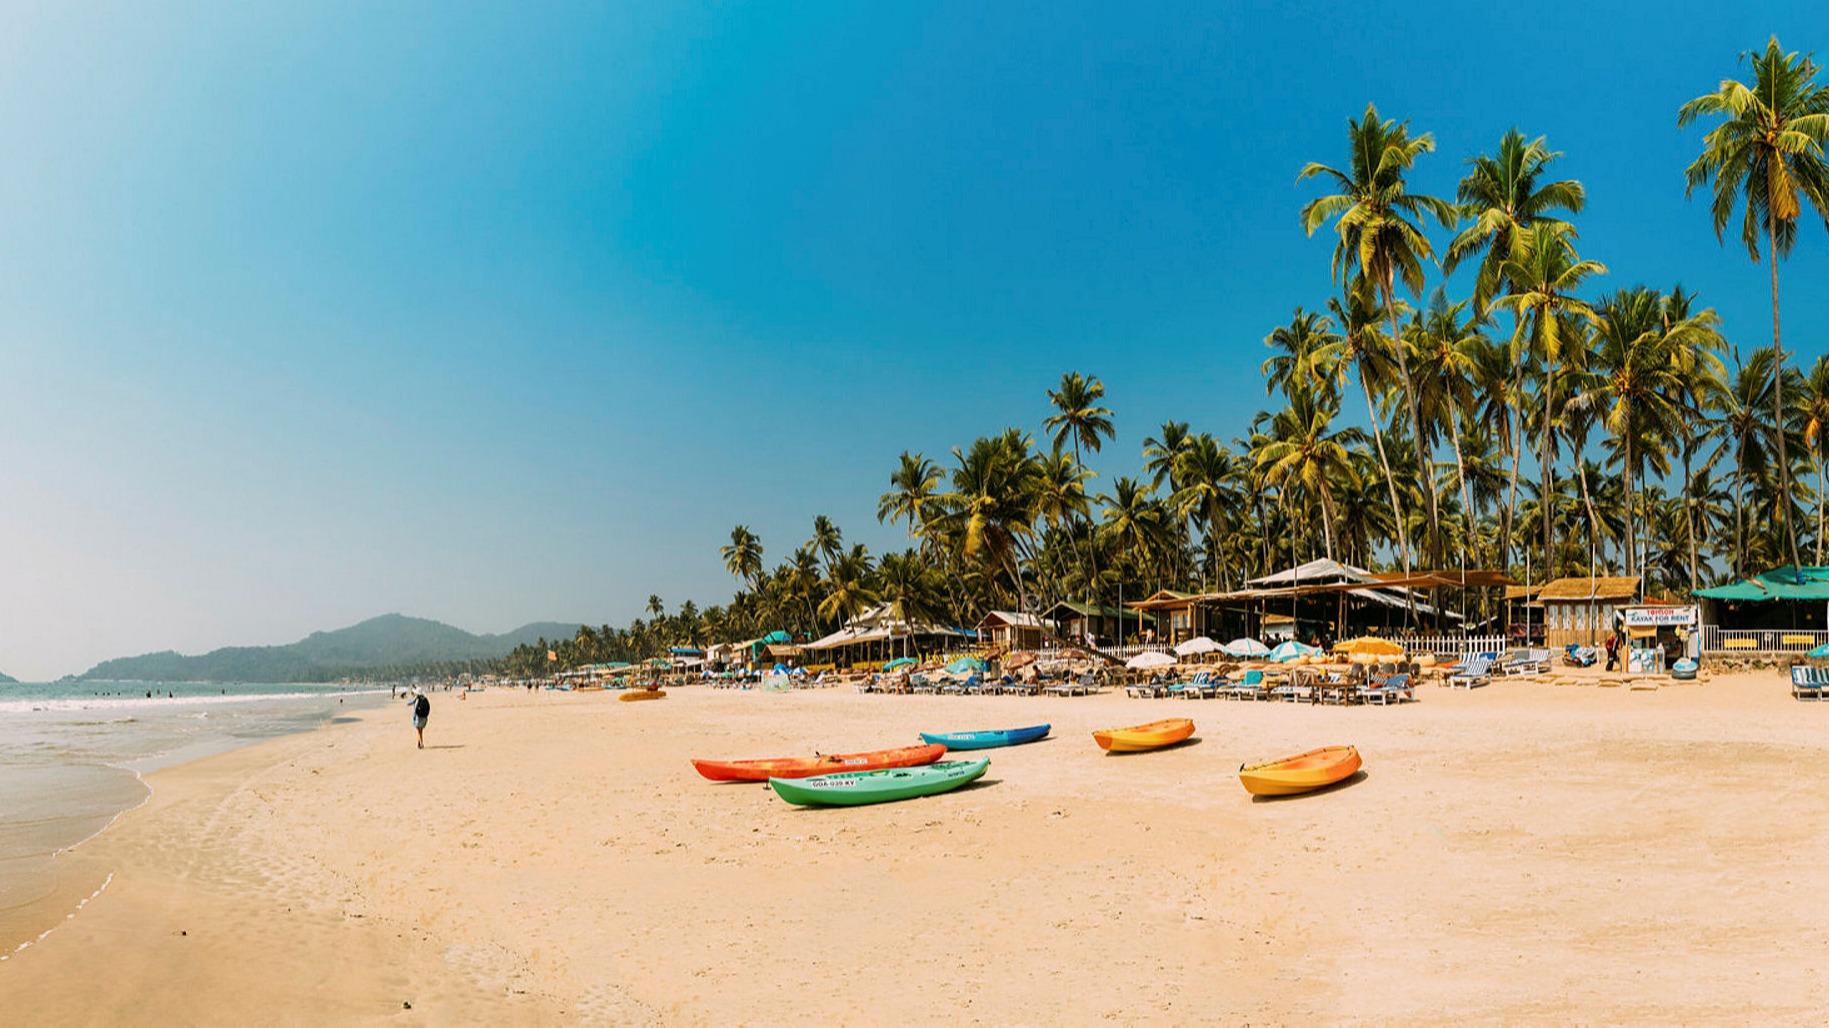 Goa Package - Pay For 03 Night And Get 4th Night Complementary (Pay For Meal Charges Only)*